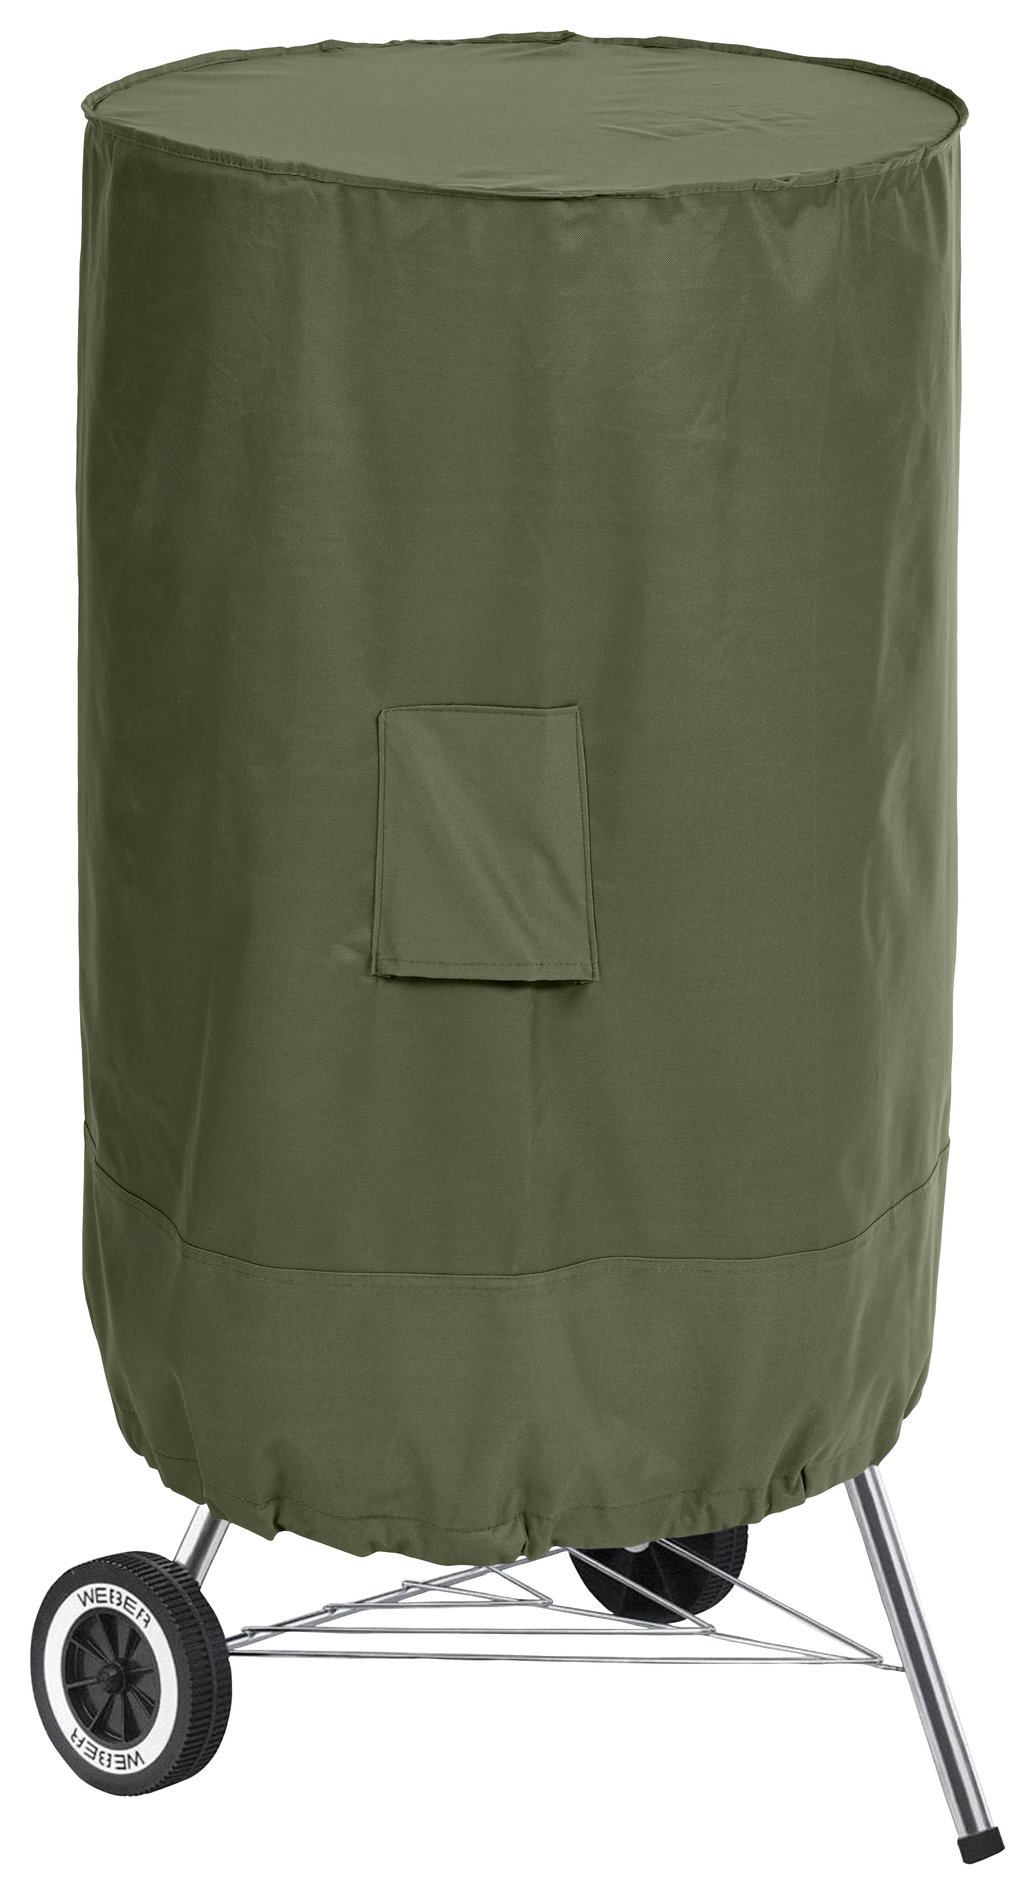 Gardman - Kettle Barbecue Cover lowest price